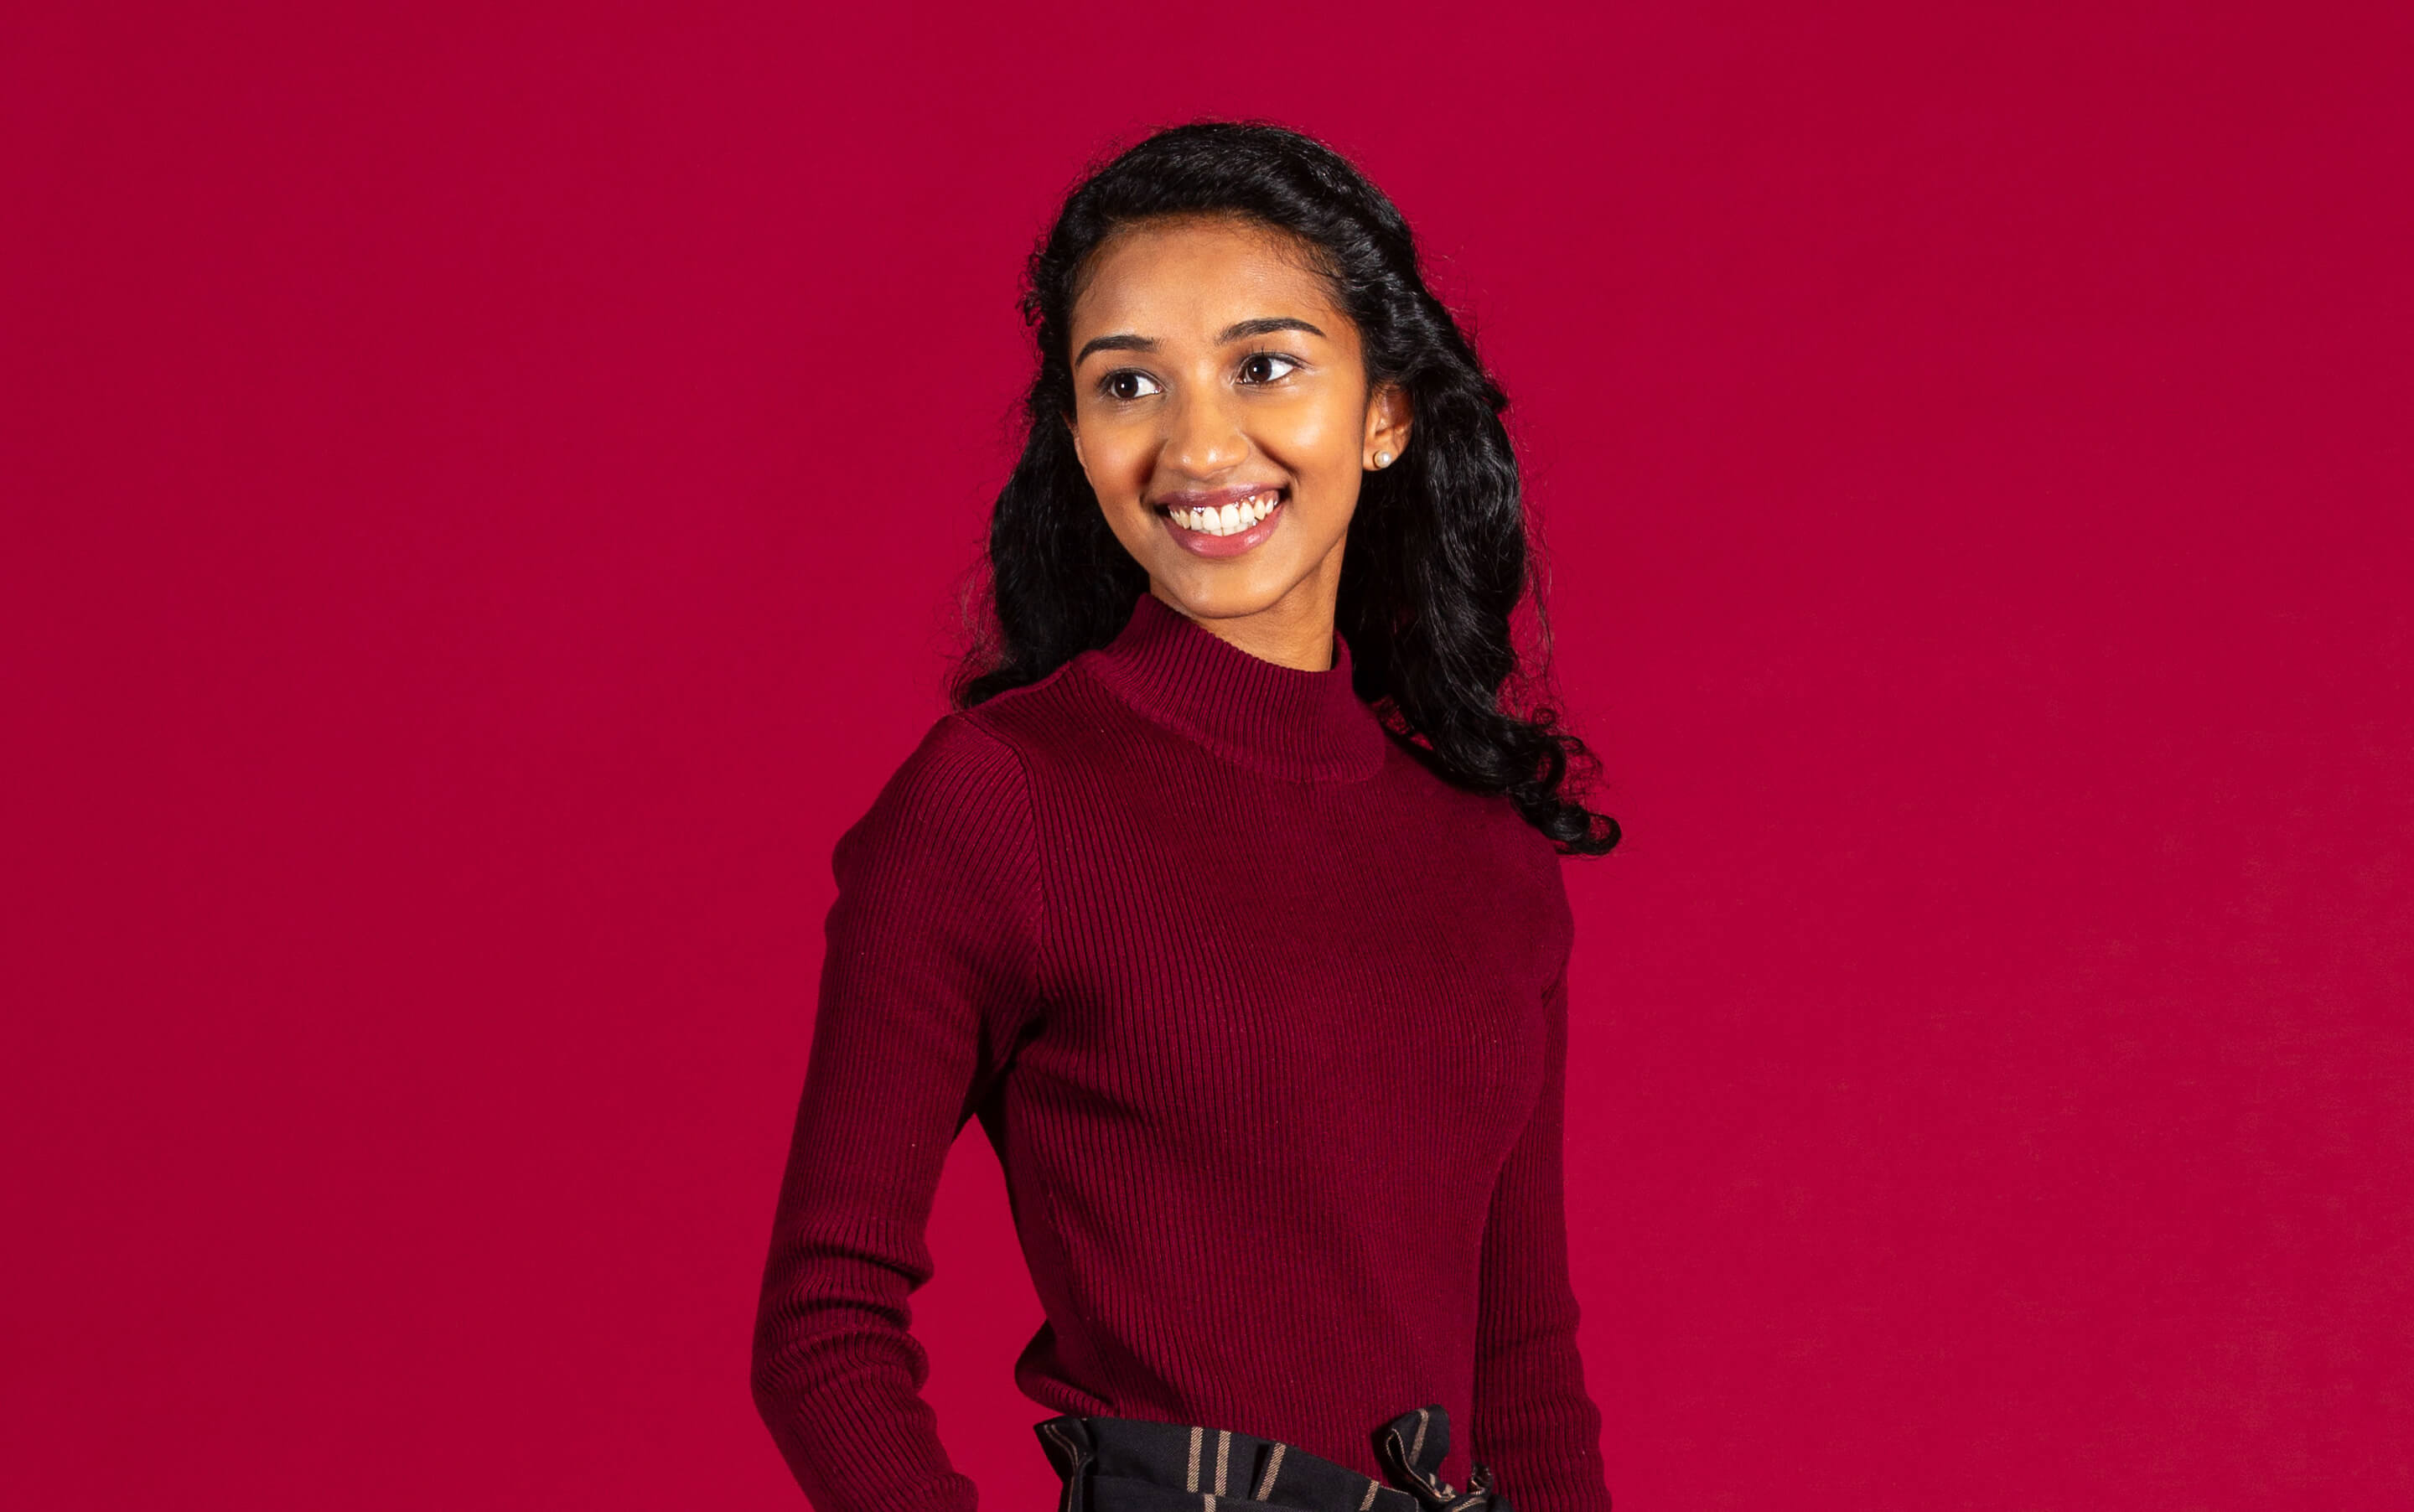 Student smiling with crimson background